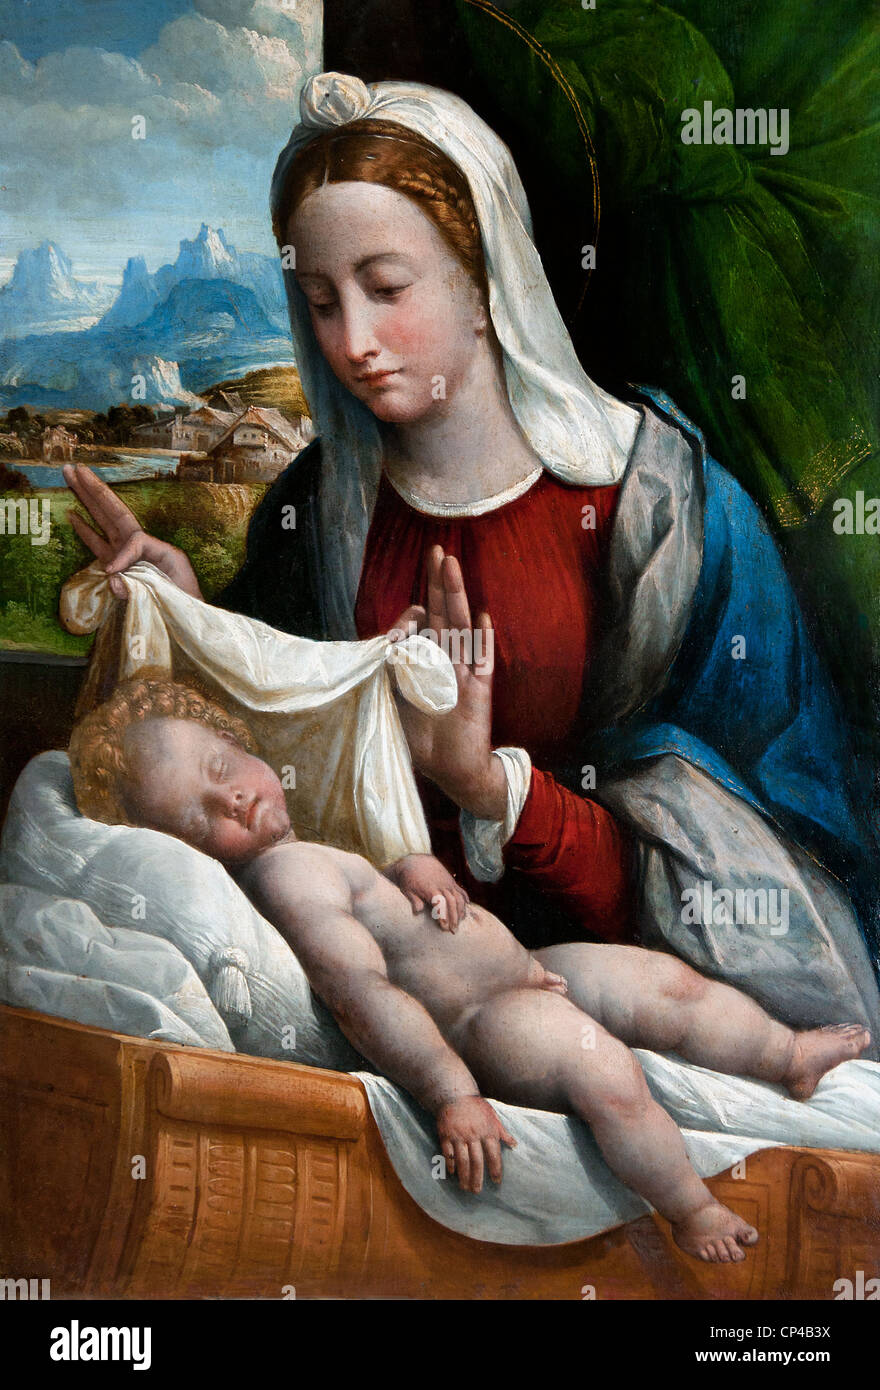 Mary The Infant Jesus Are Sleeping Stockfotos & Mary The Infant ...